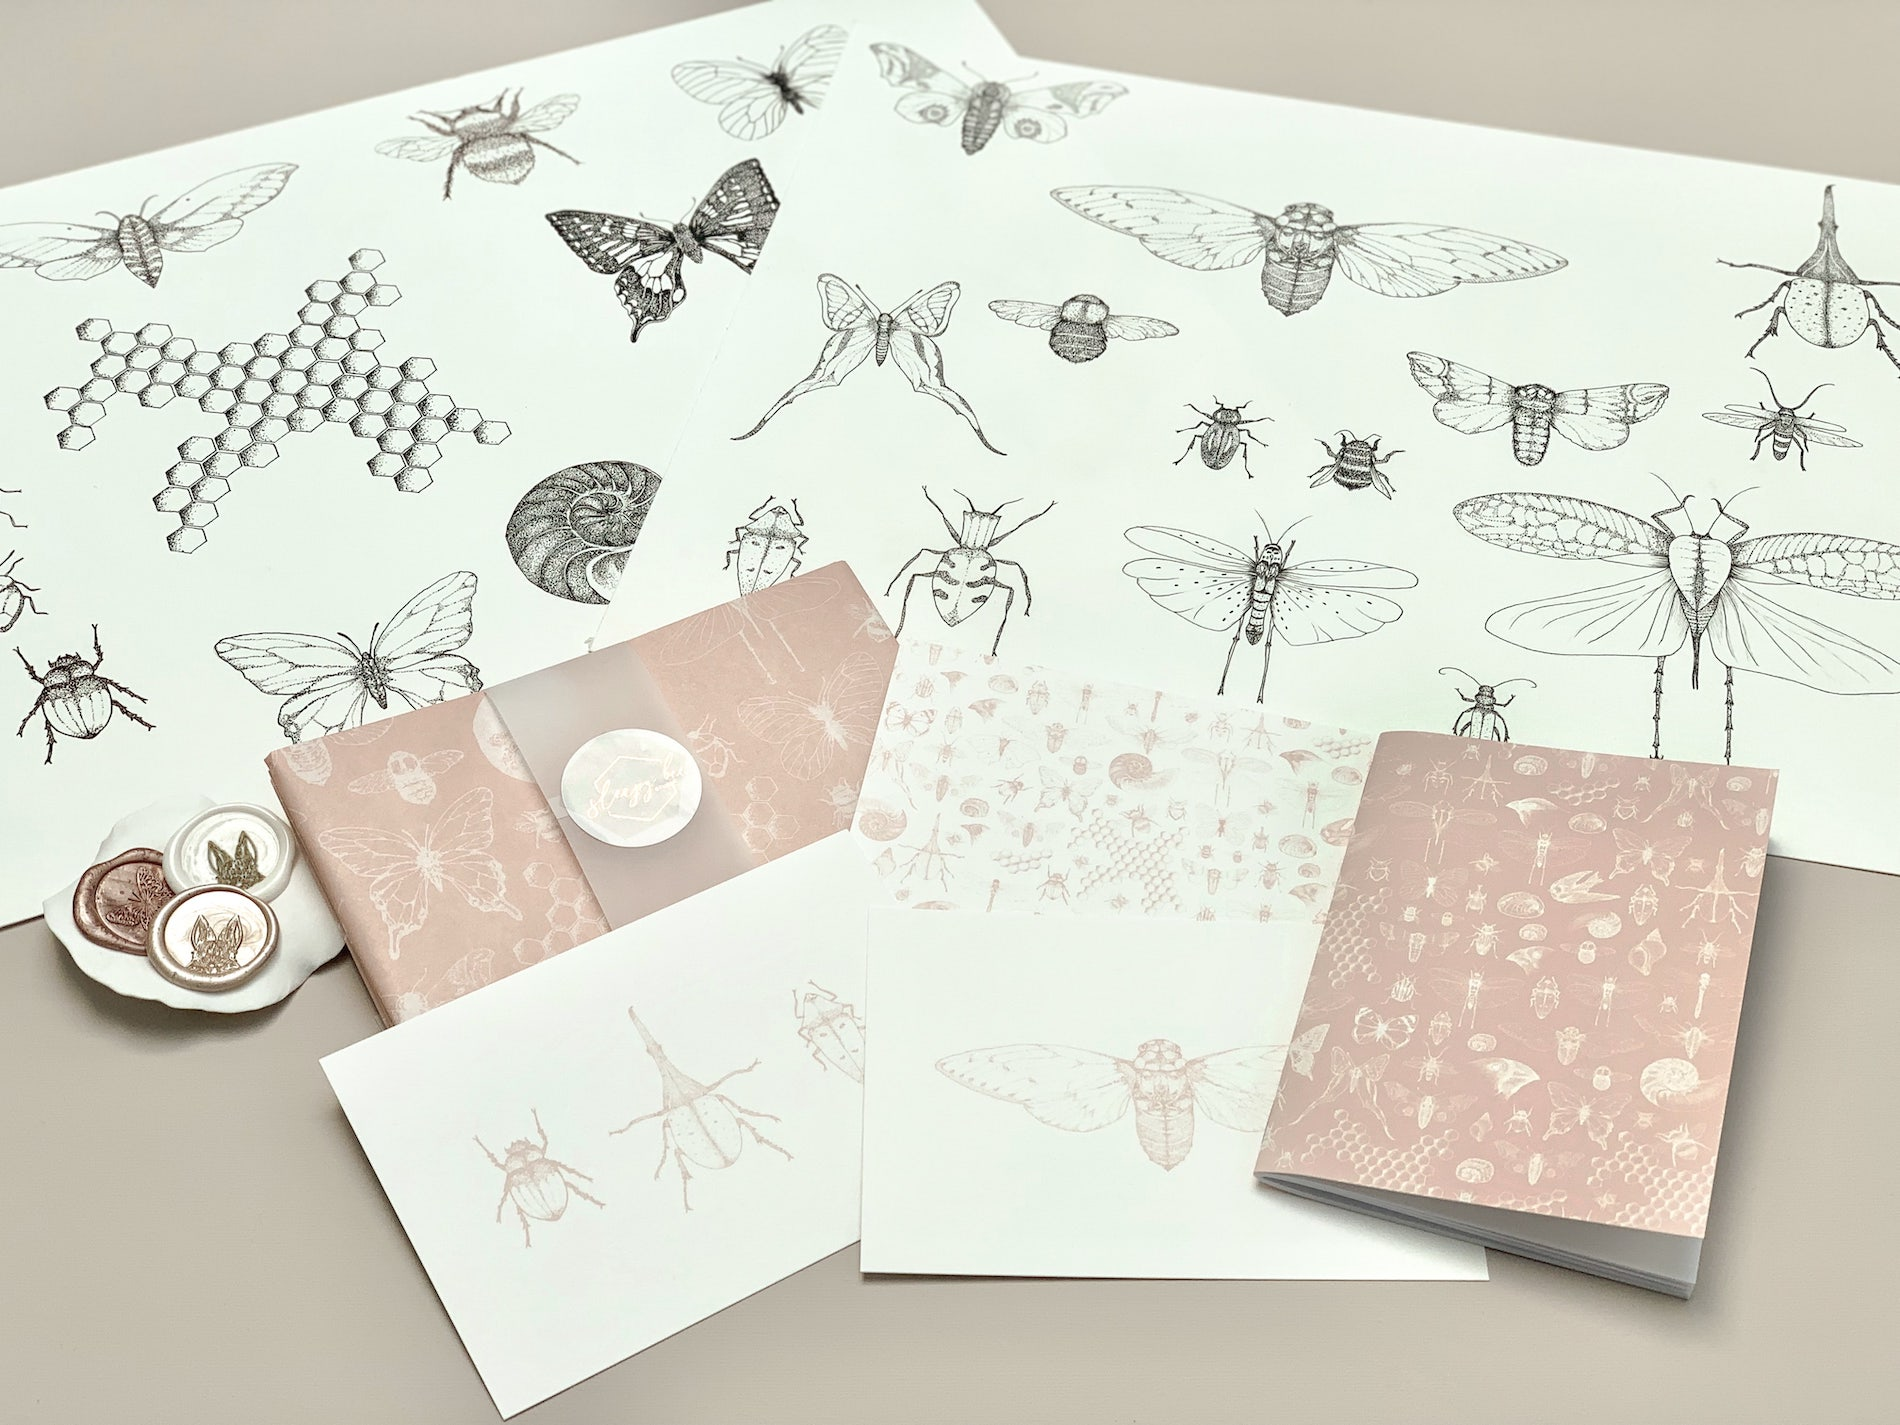 Illustrations for the Darwin custom tissue paper design